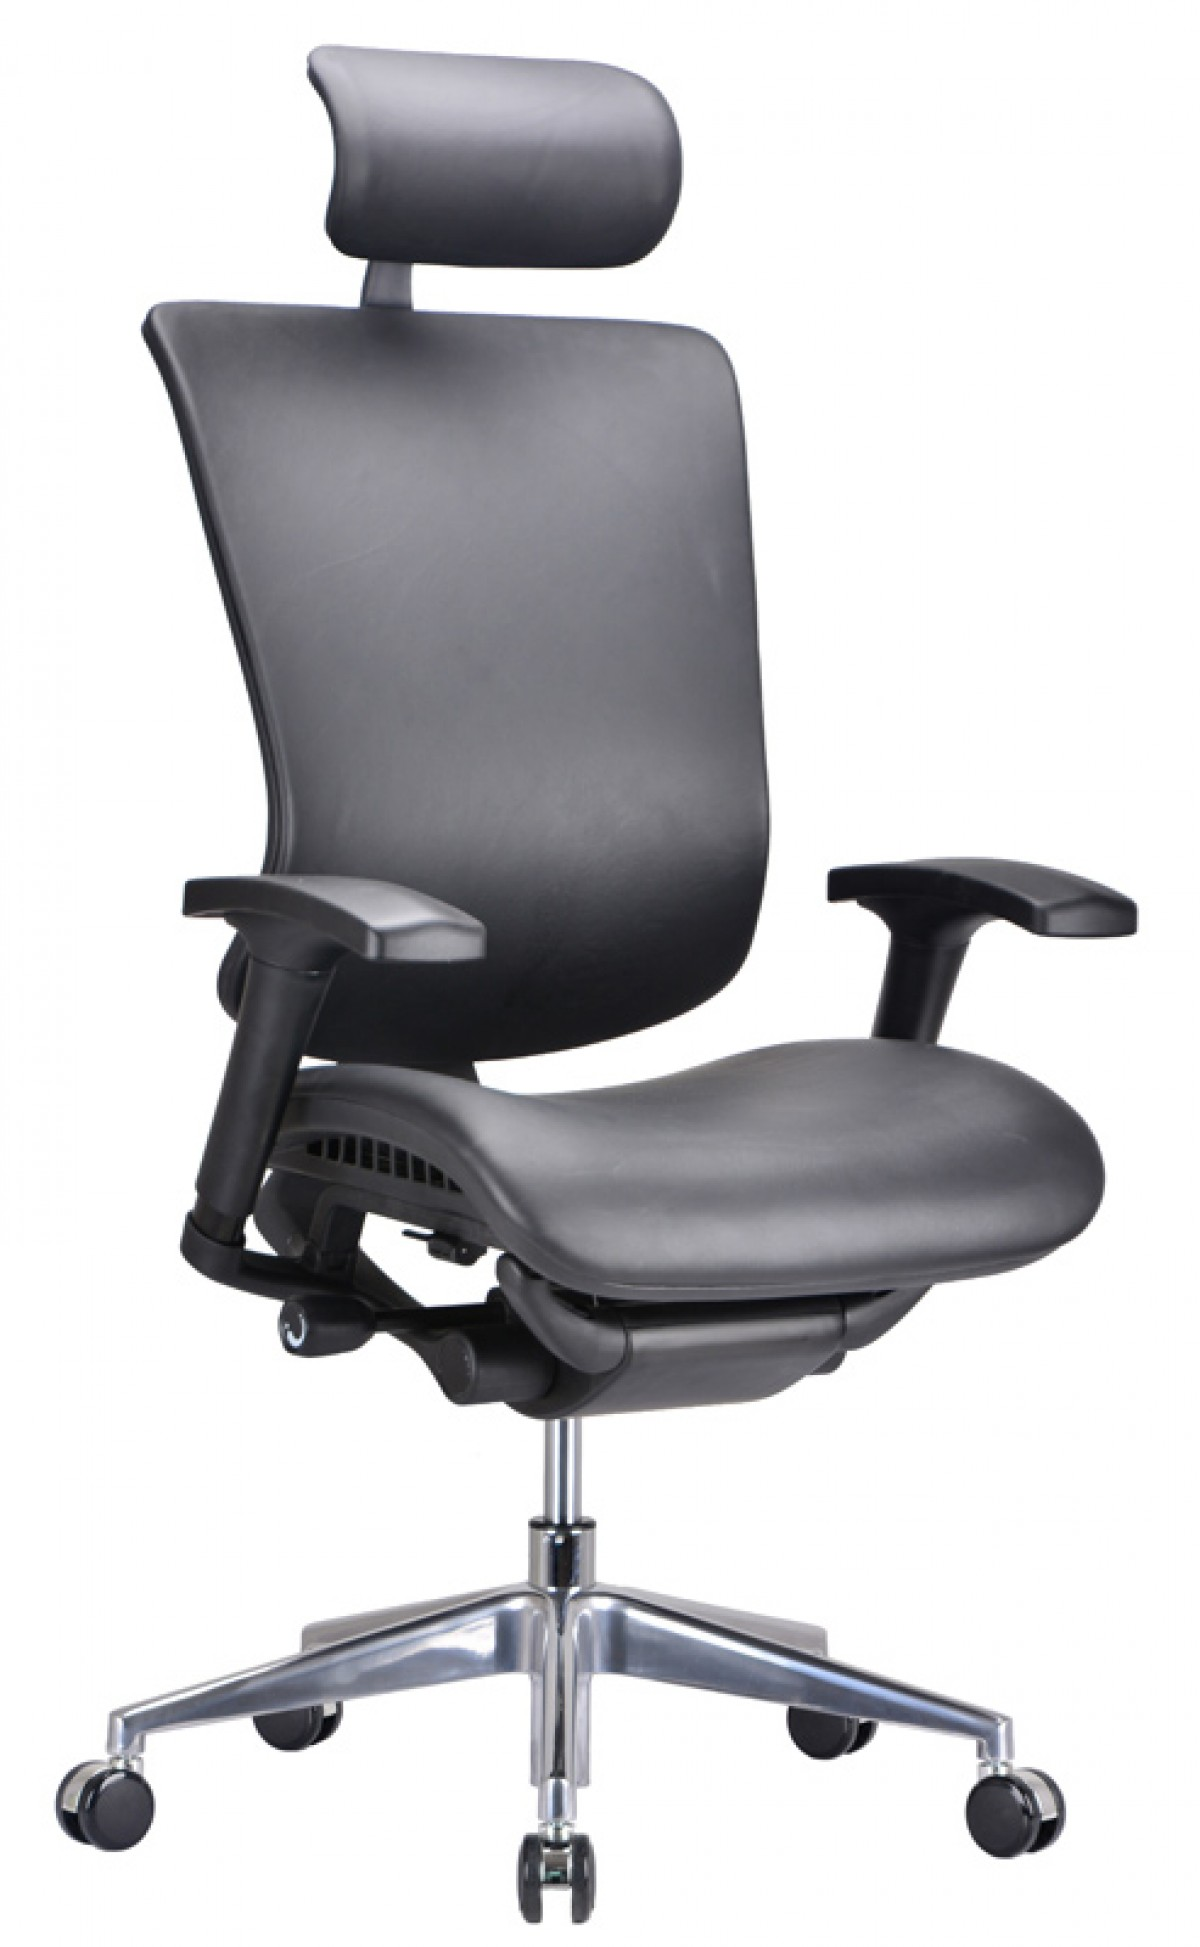 Modrest Watson Modern Black Leather fice Chair fice Chairs